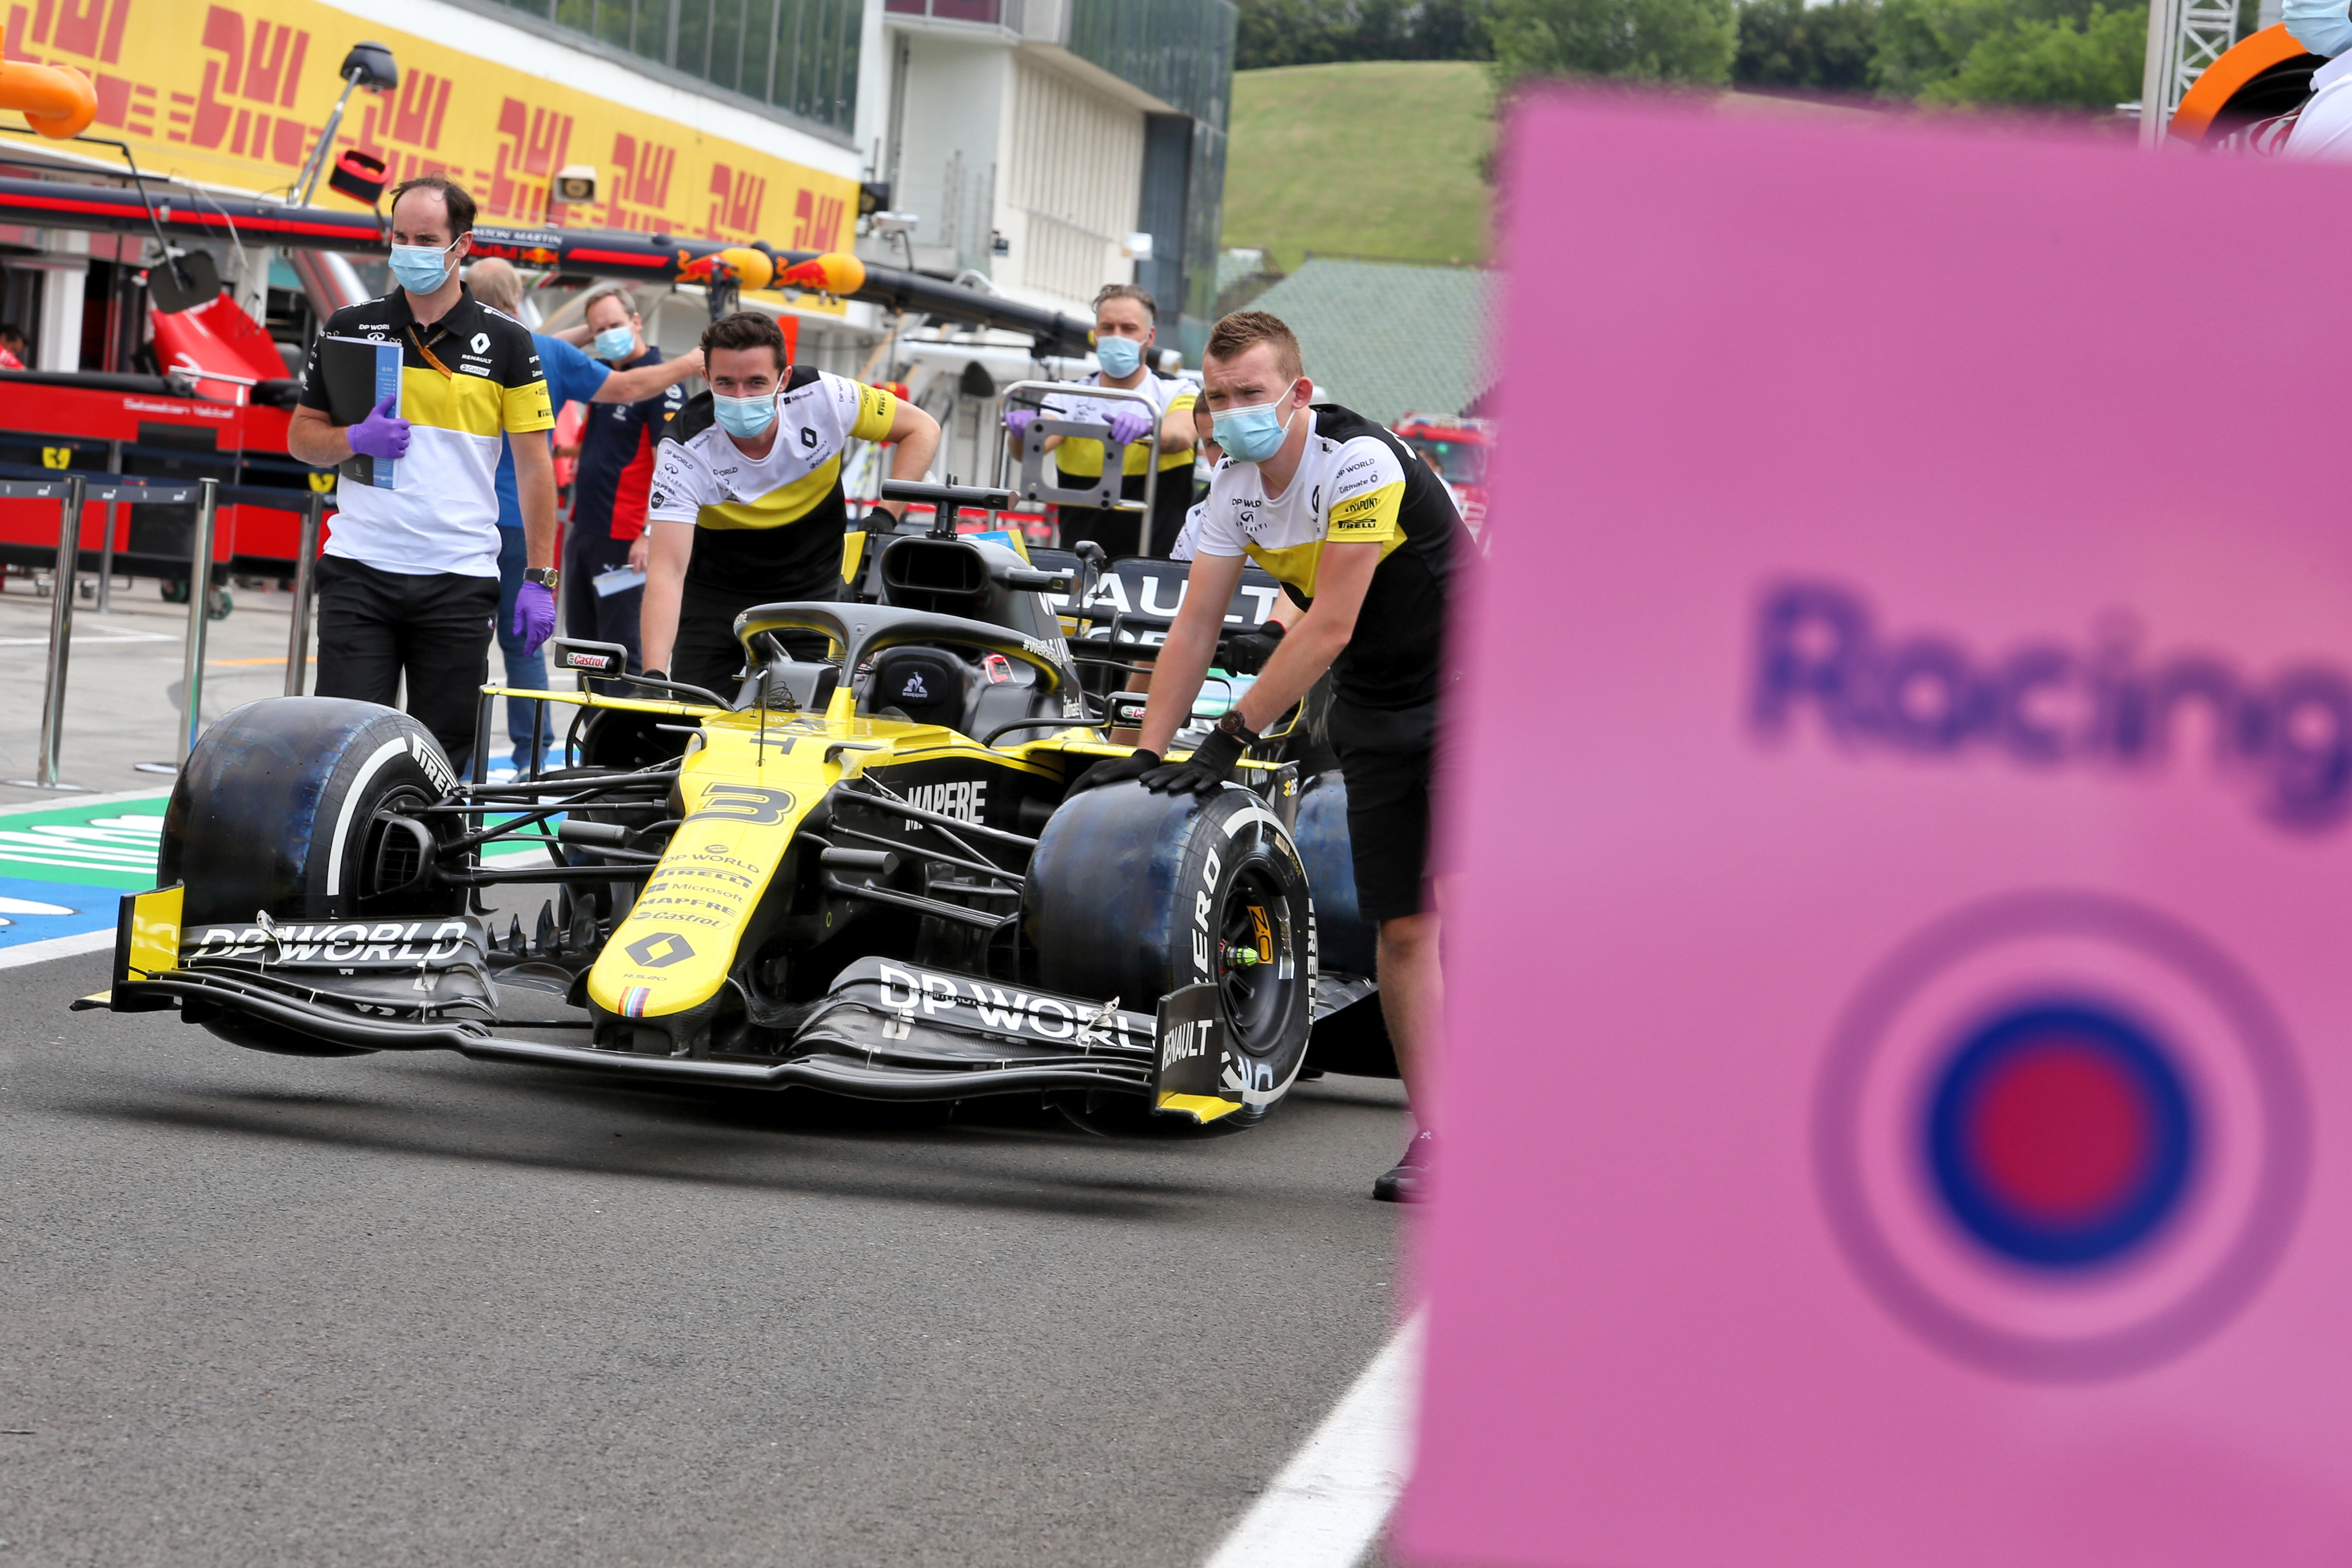 Racing Point Renault F1 Silverstone 2020